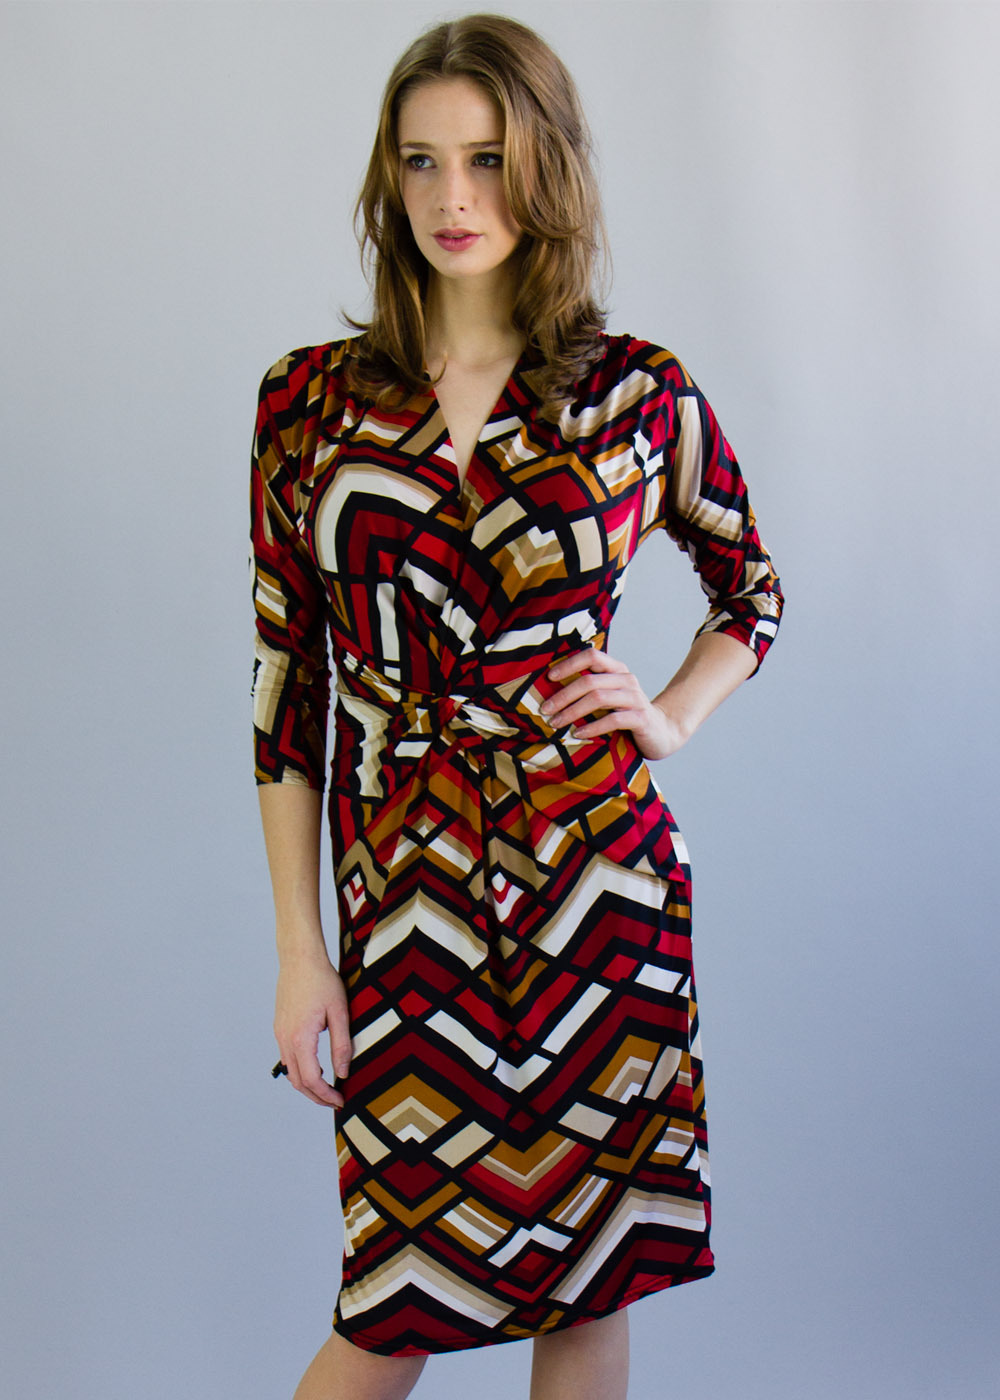 Aztec Dress - style: faux wrap/wrap; length: below the knee; neckline: v-neck; waist detail: flattering waist detail; predominant colour: true red; secondary colour: mustard; occasions: casual, creative work; fit: body skimming; fibres: viscose/rayon - stretch; sleeve length: 3/4 length; sleeve style: standard; pattern type: fabric; pattern size: big & busy; pattern: patterned/print; texture group: jersey - stretchy/drapey; season: a/w 2013